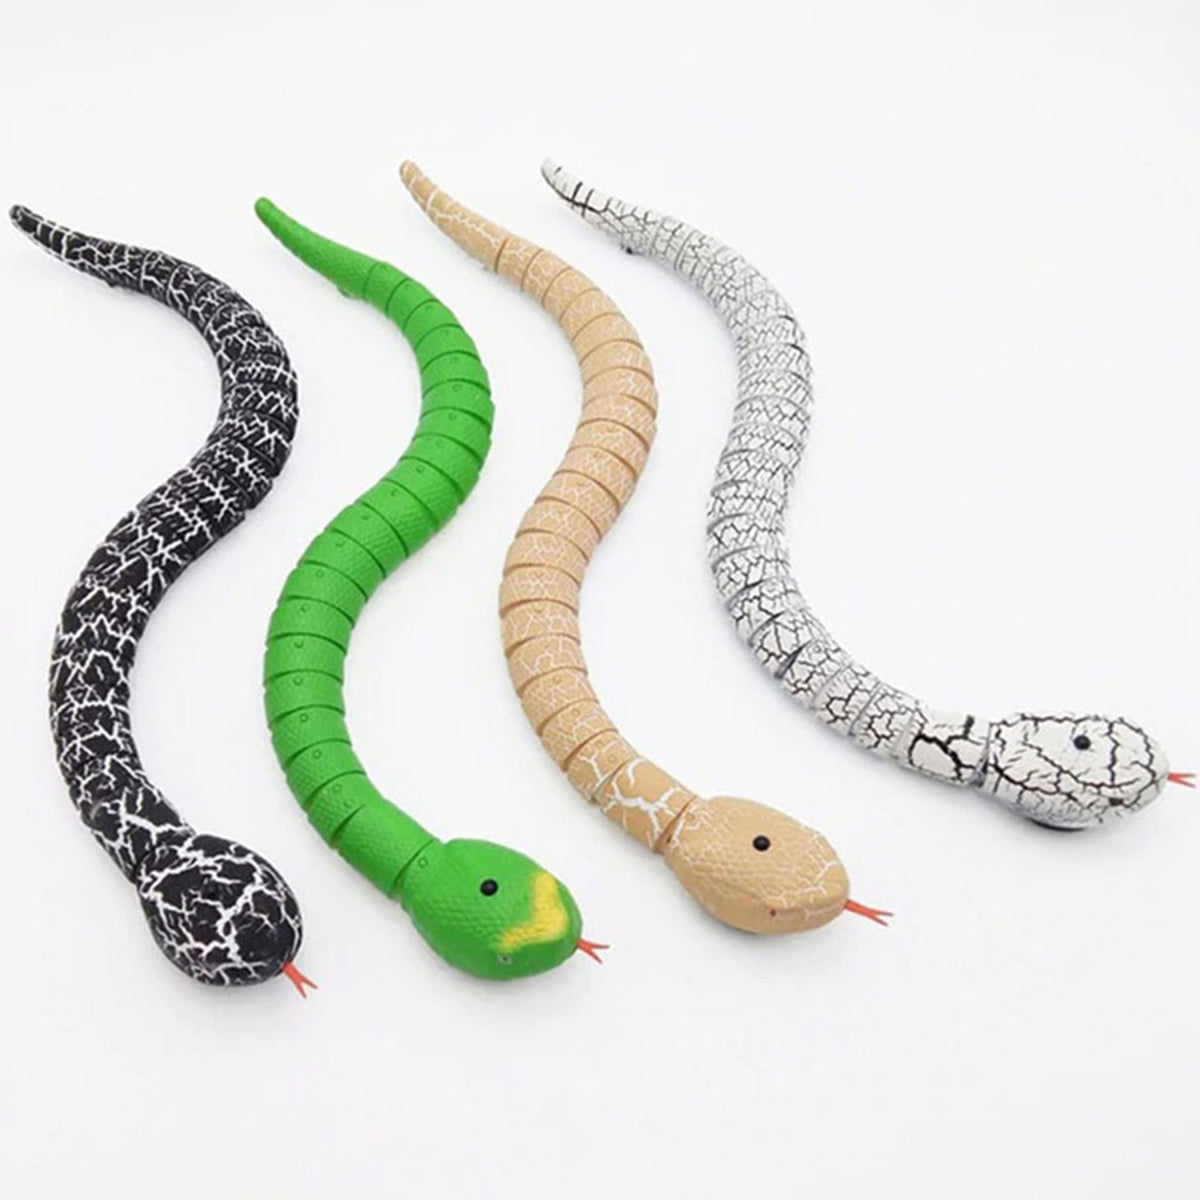 Fun Remote Control Lifelike Snake for Children